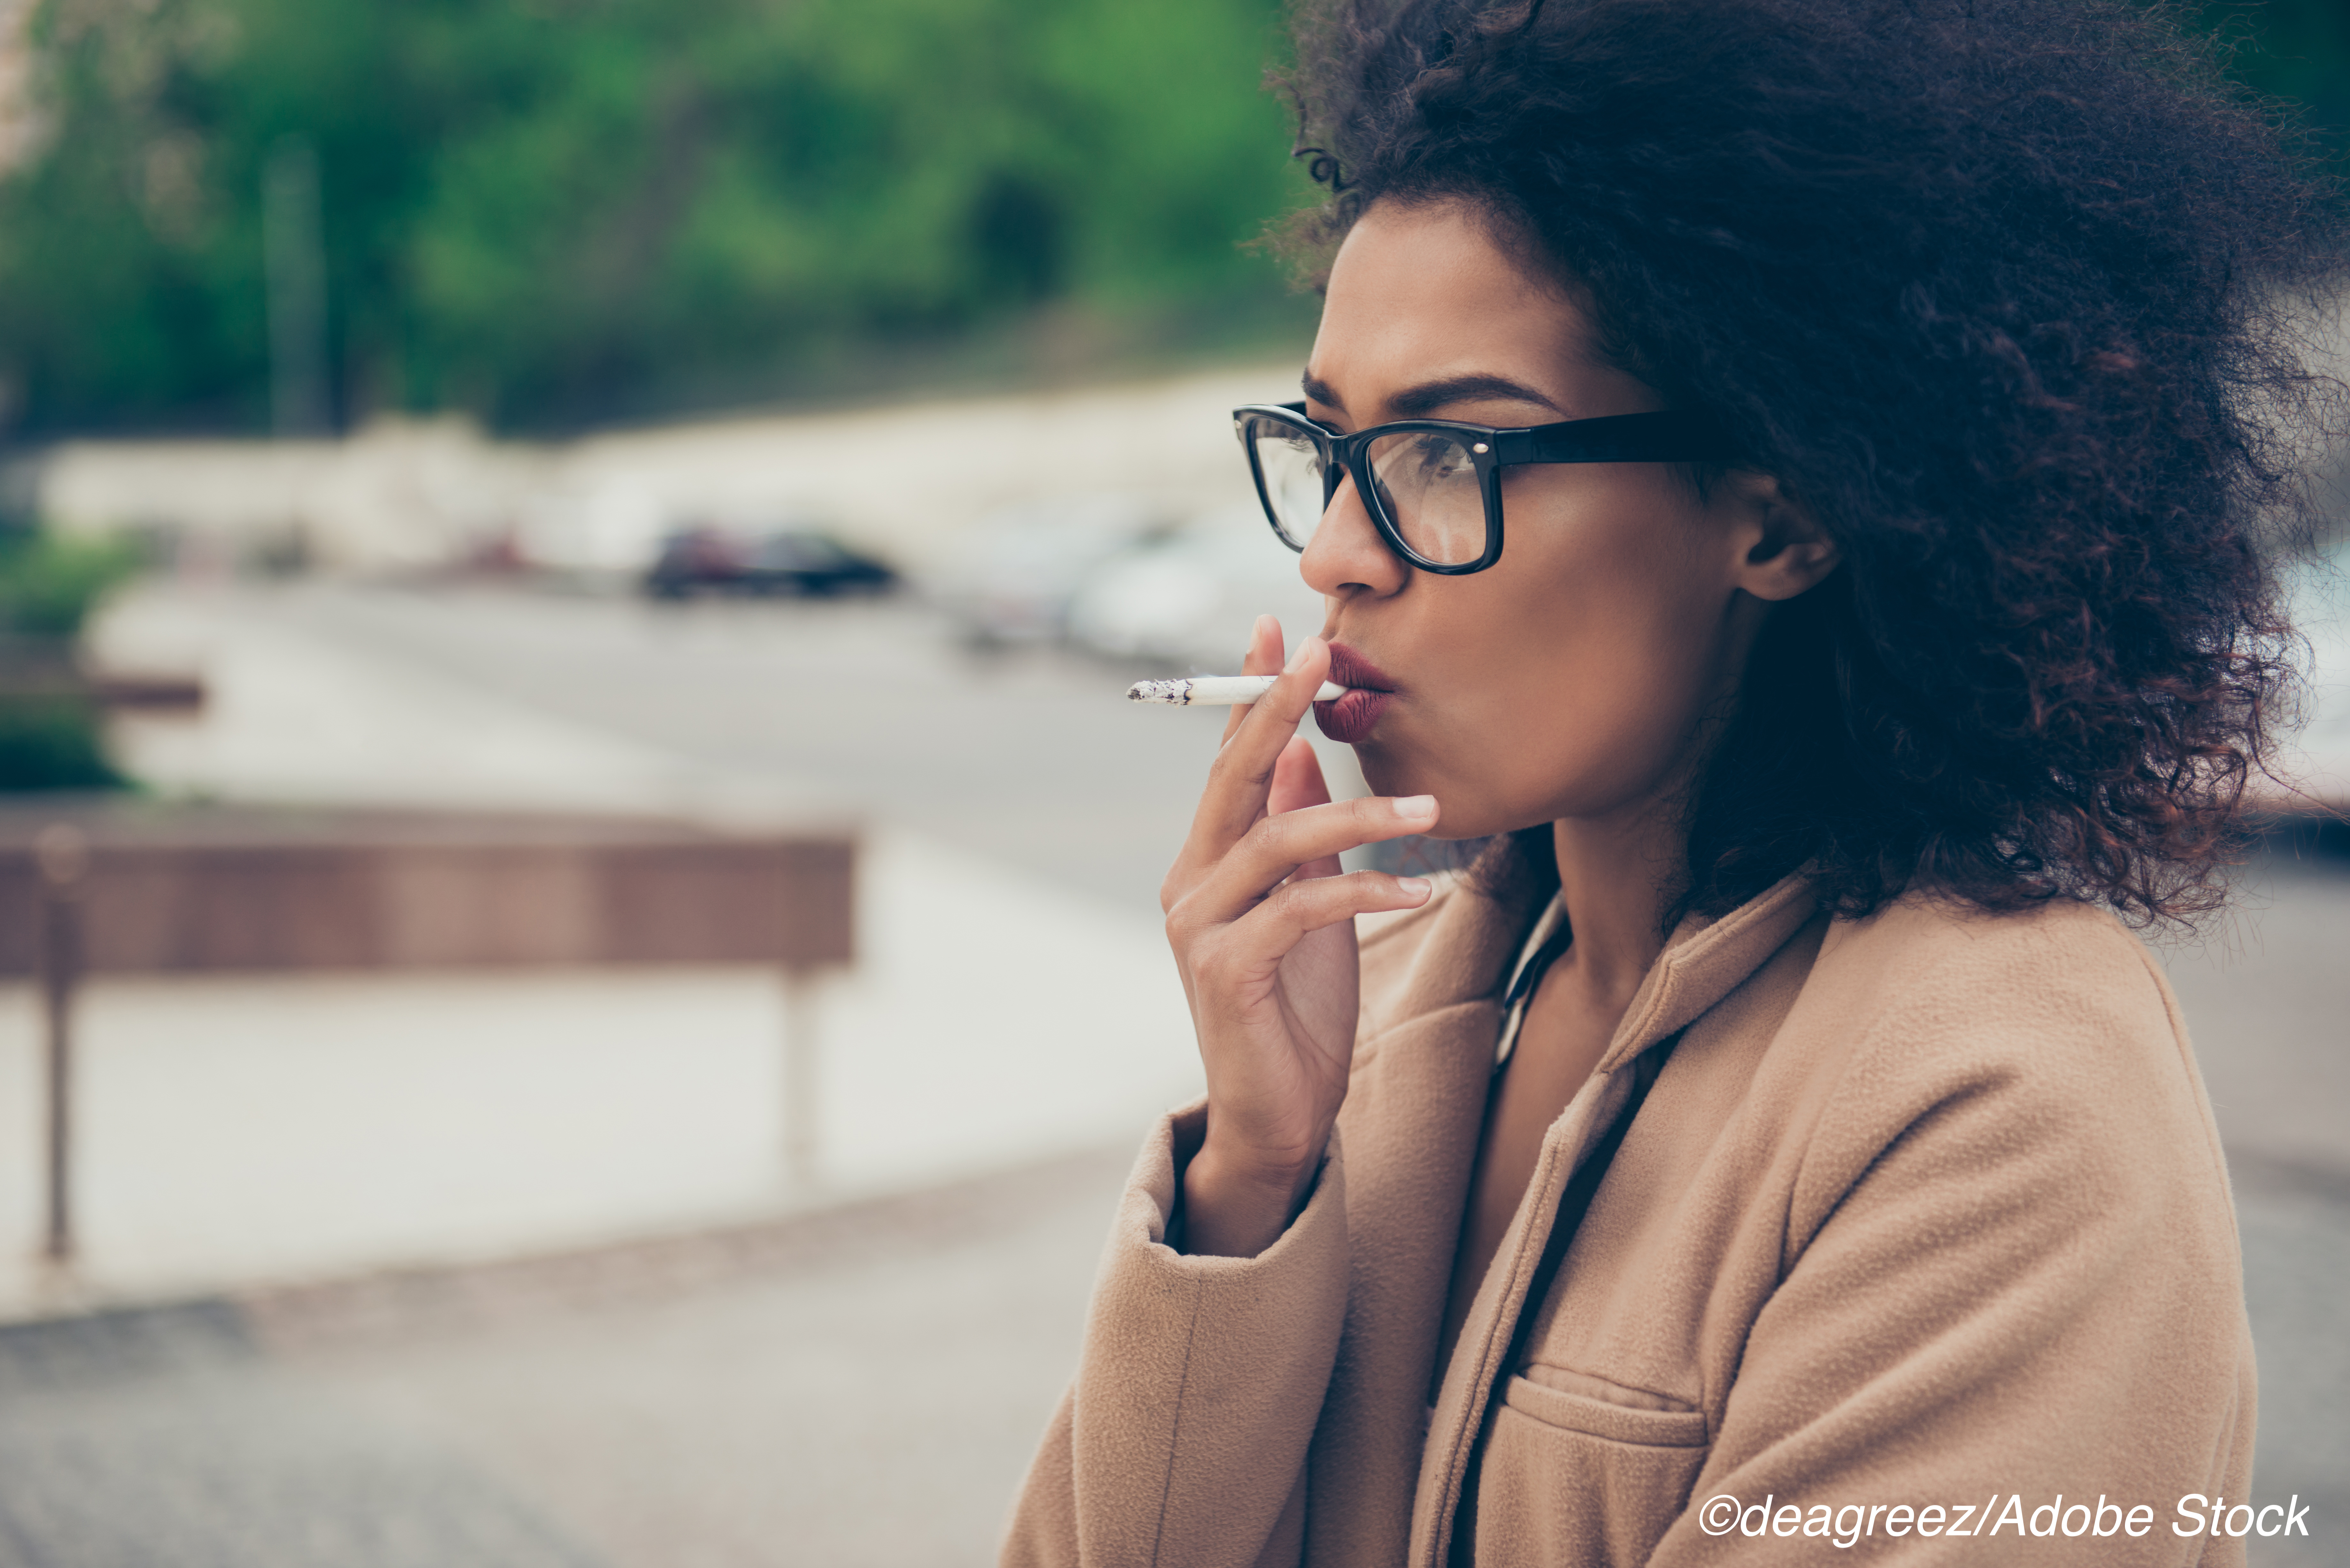 Female Smokers Frequently Avoid Cancer Screenings